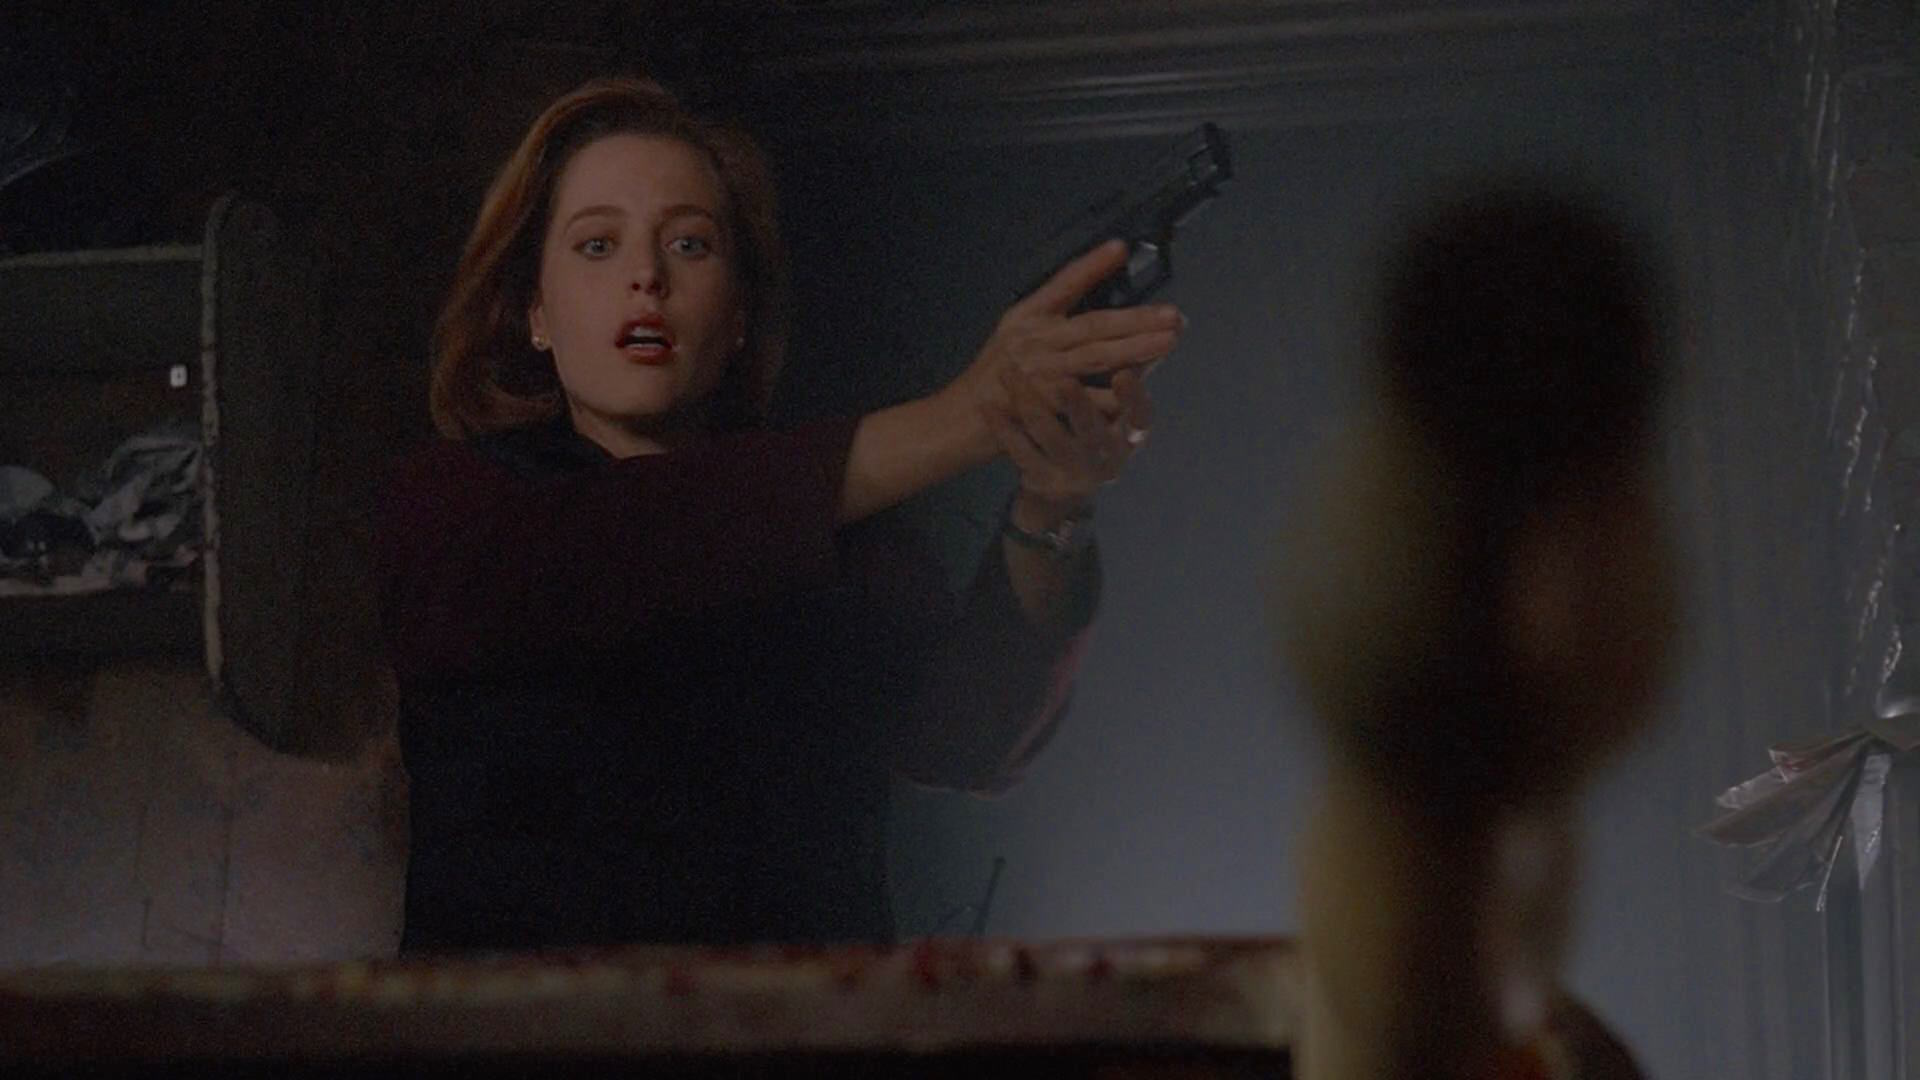 Gillian Anderson in The X Files (1993)